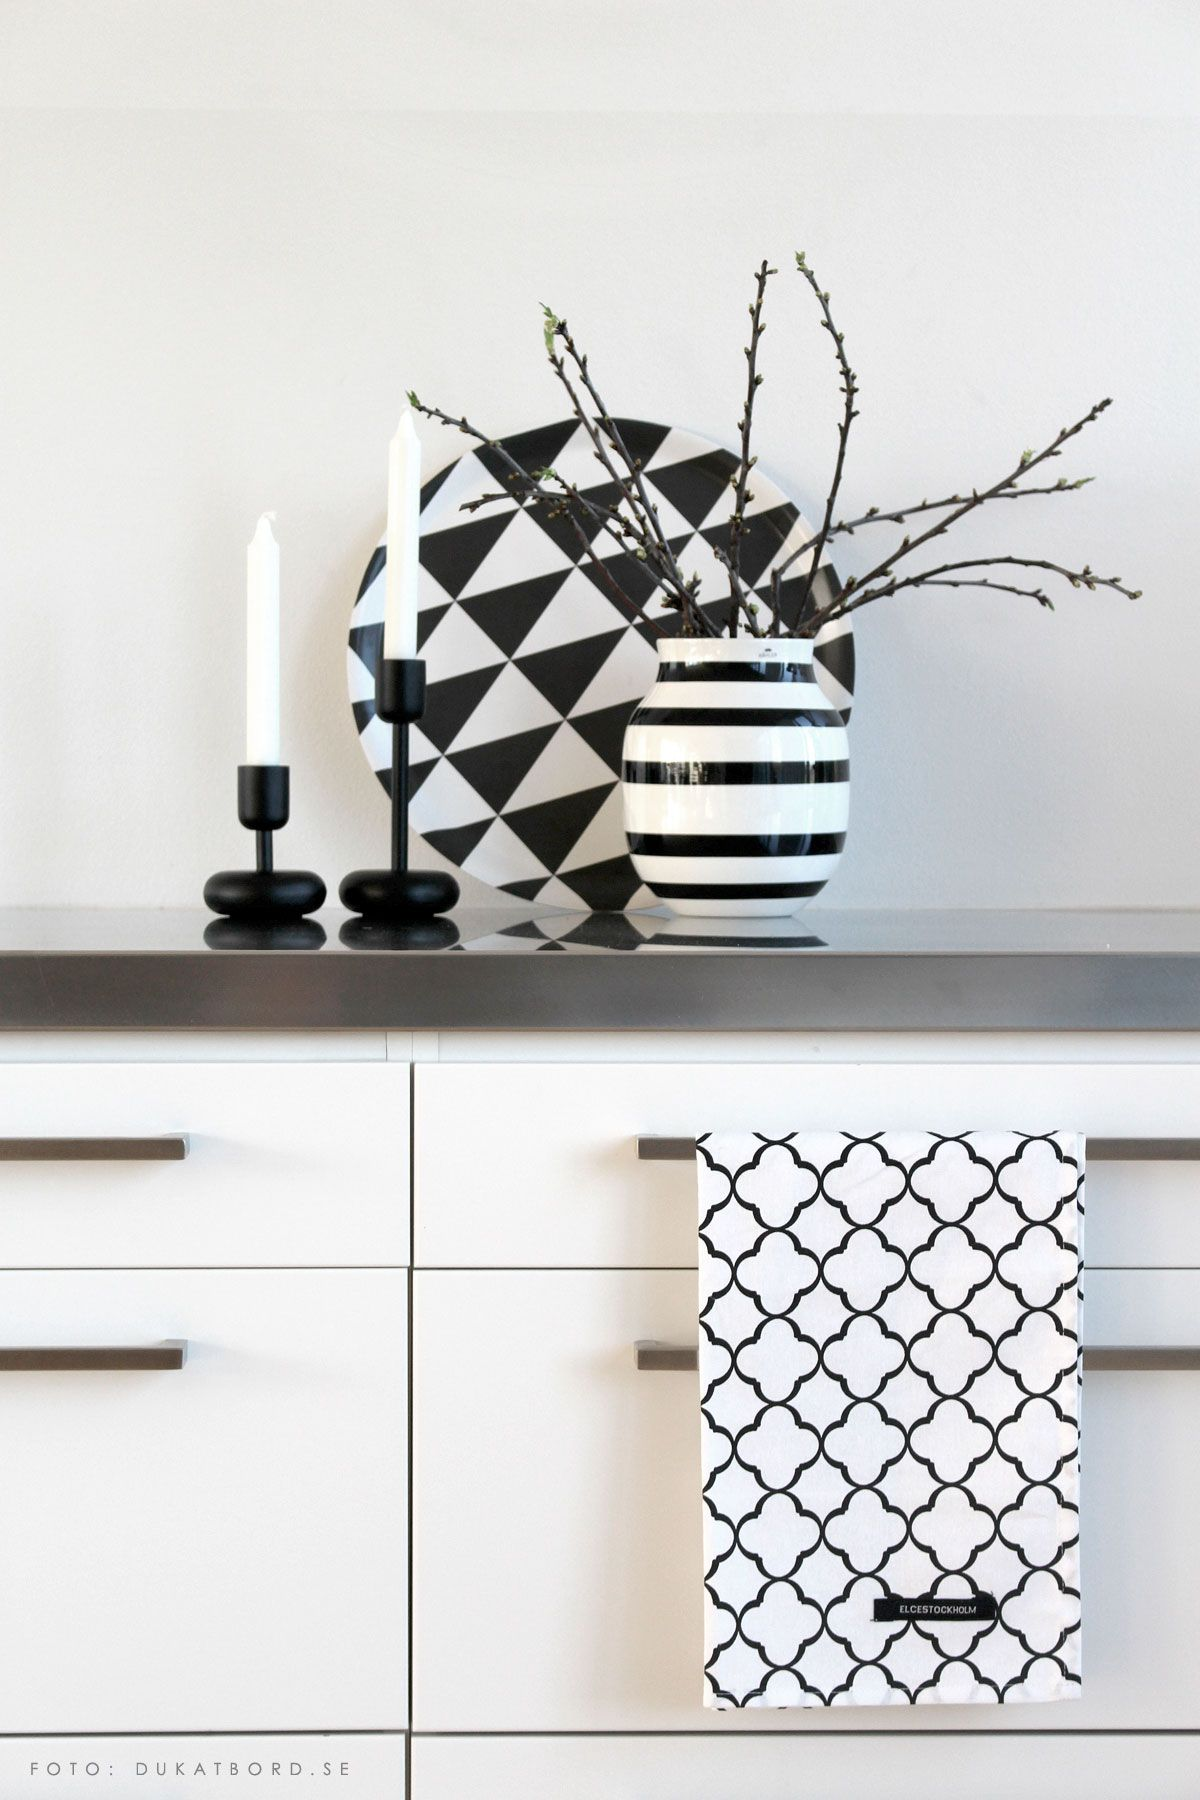 elce stockholm kitchentowels omaggio vase k hler nappula candlesticks iittala plattan tray. Black Bedroom Furniture Sets. Home Design Ideas